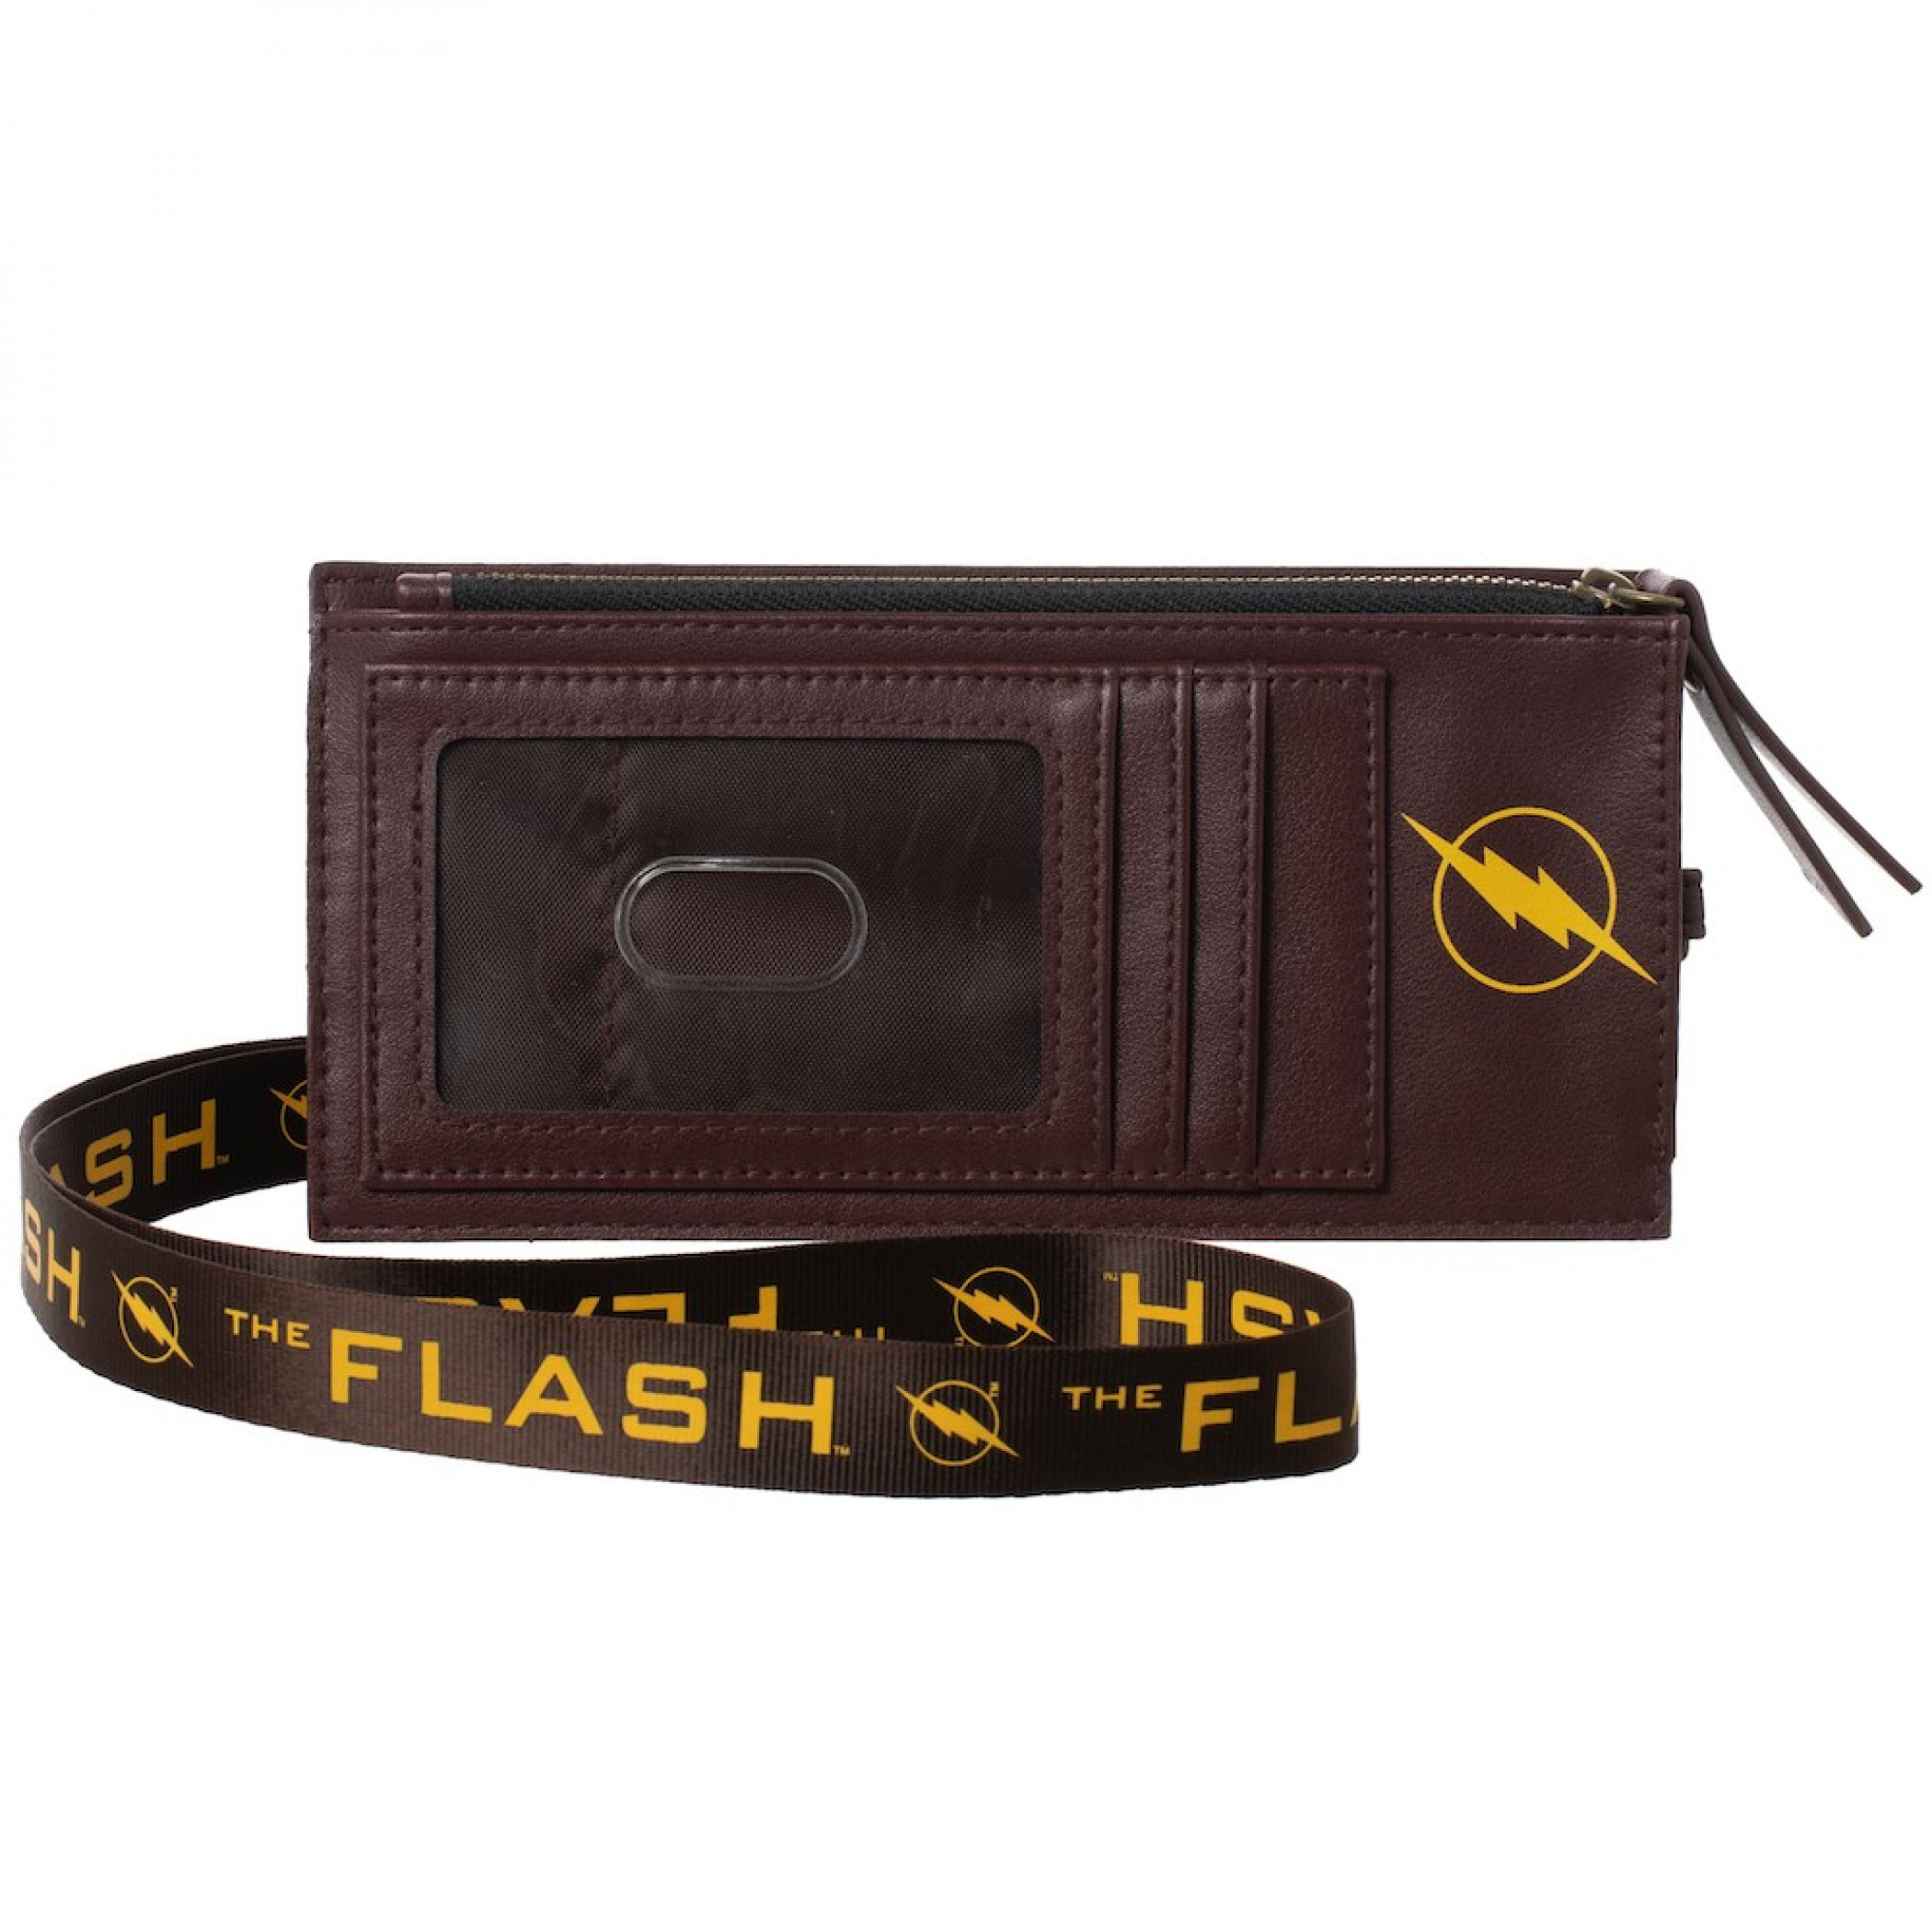 Flash Maroon Phone Sleeve With Lanyard